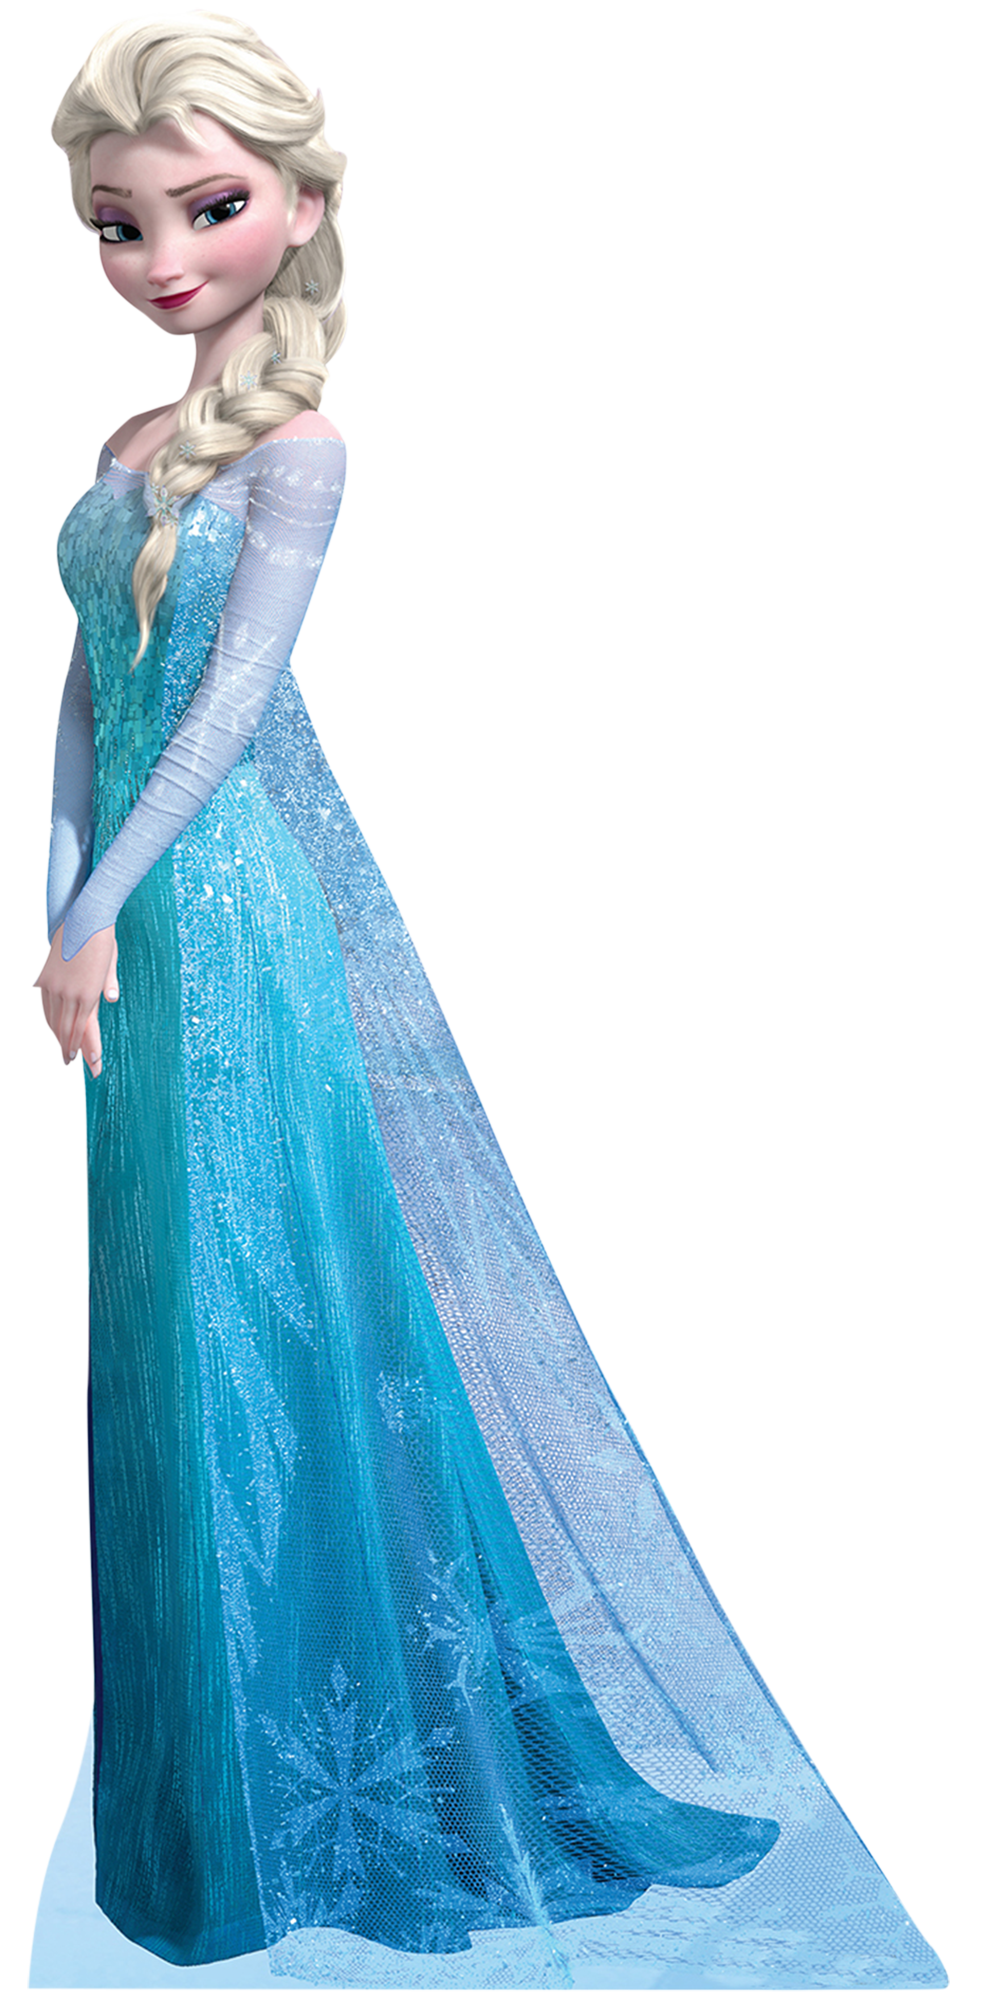 Frozen Free Download Png PNG Image